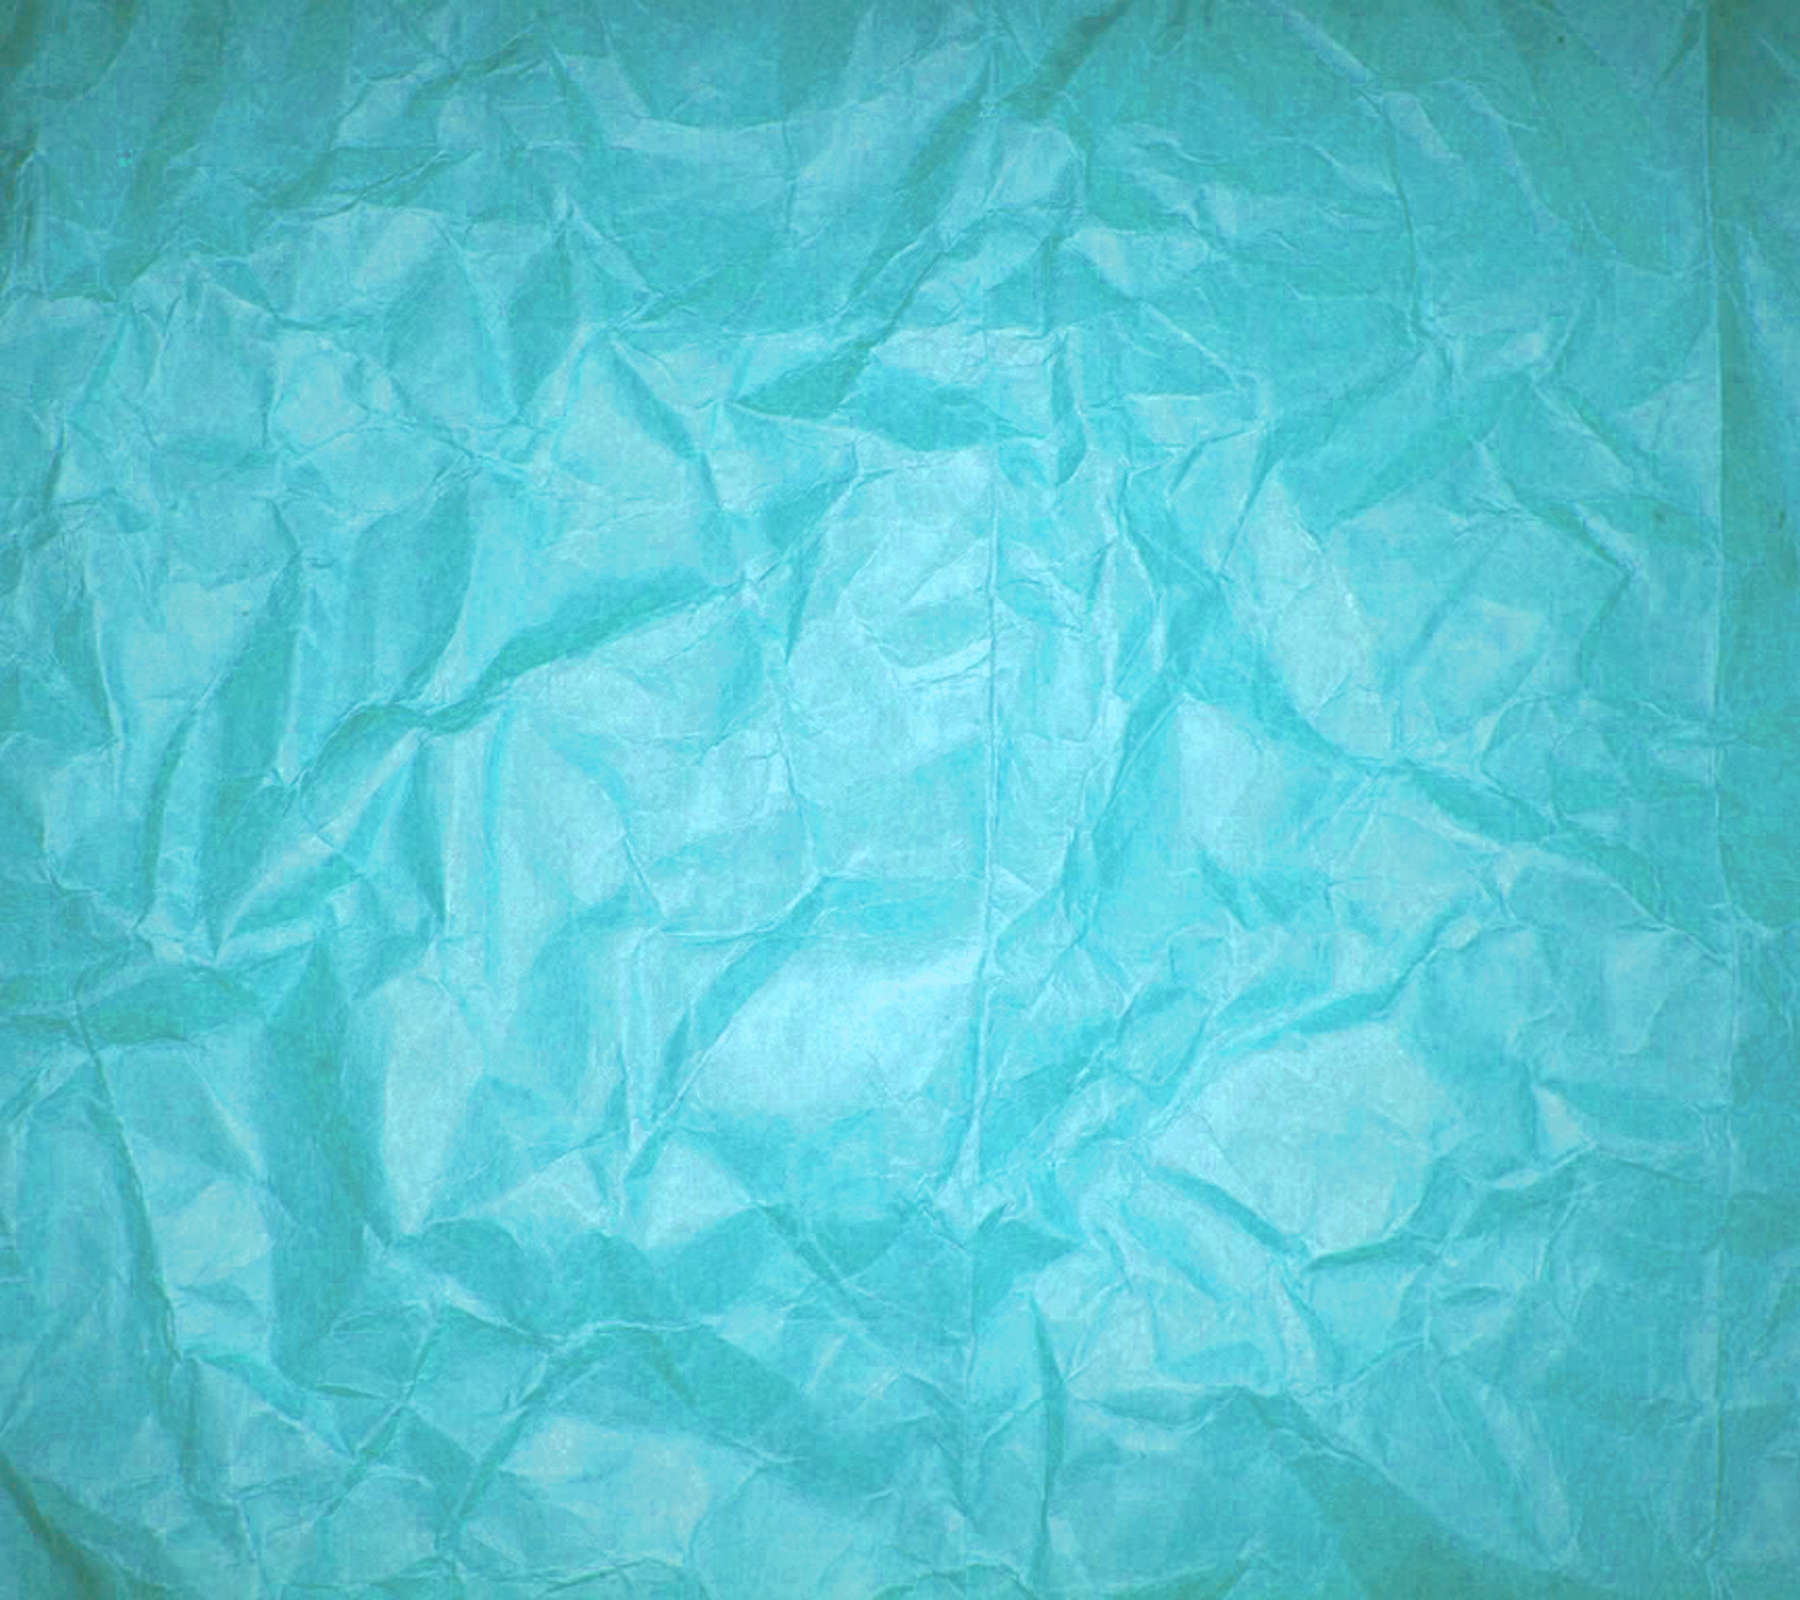 background wallpaper image teal parchment paper wallpaper texture 1800x1600